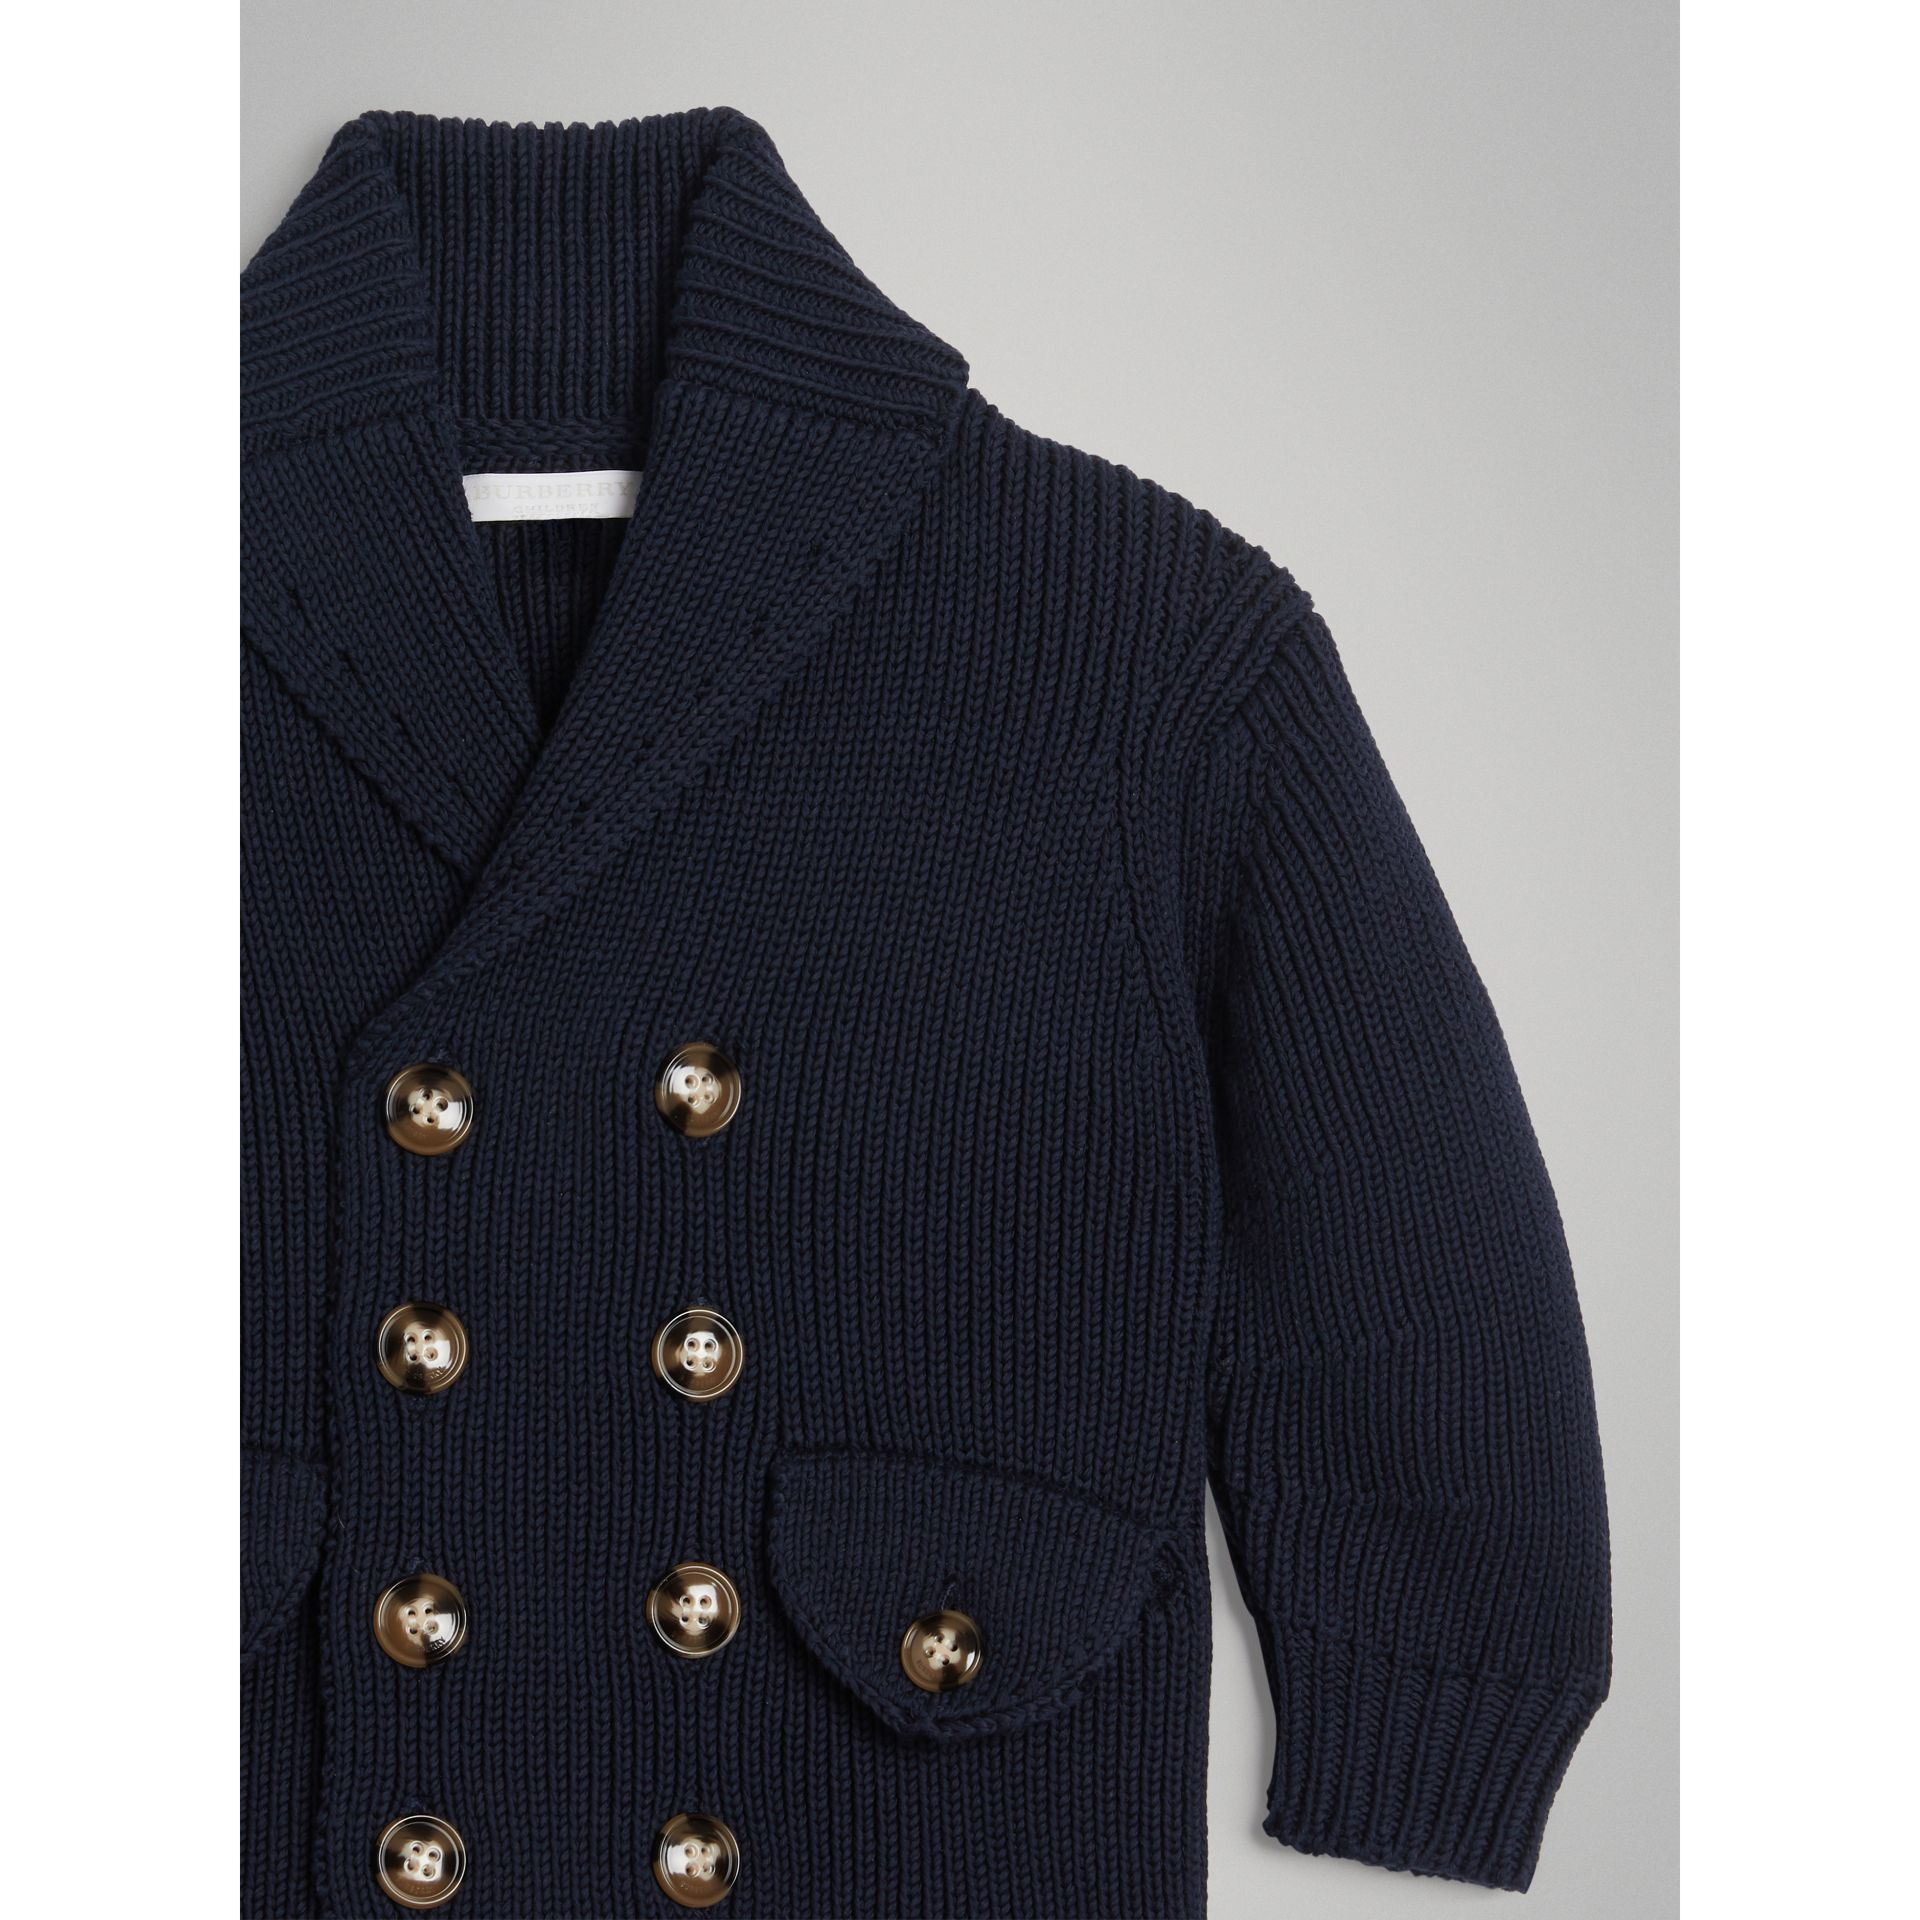 Cotton Knit Pea Coat Cardigan in Navy | Burberry - gallery image 4